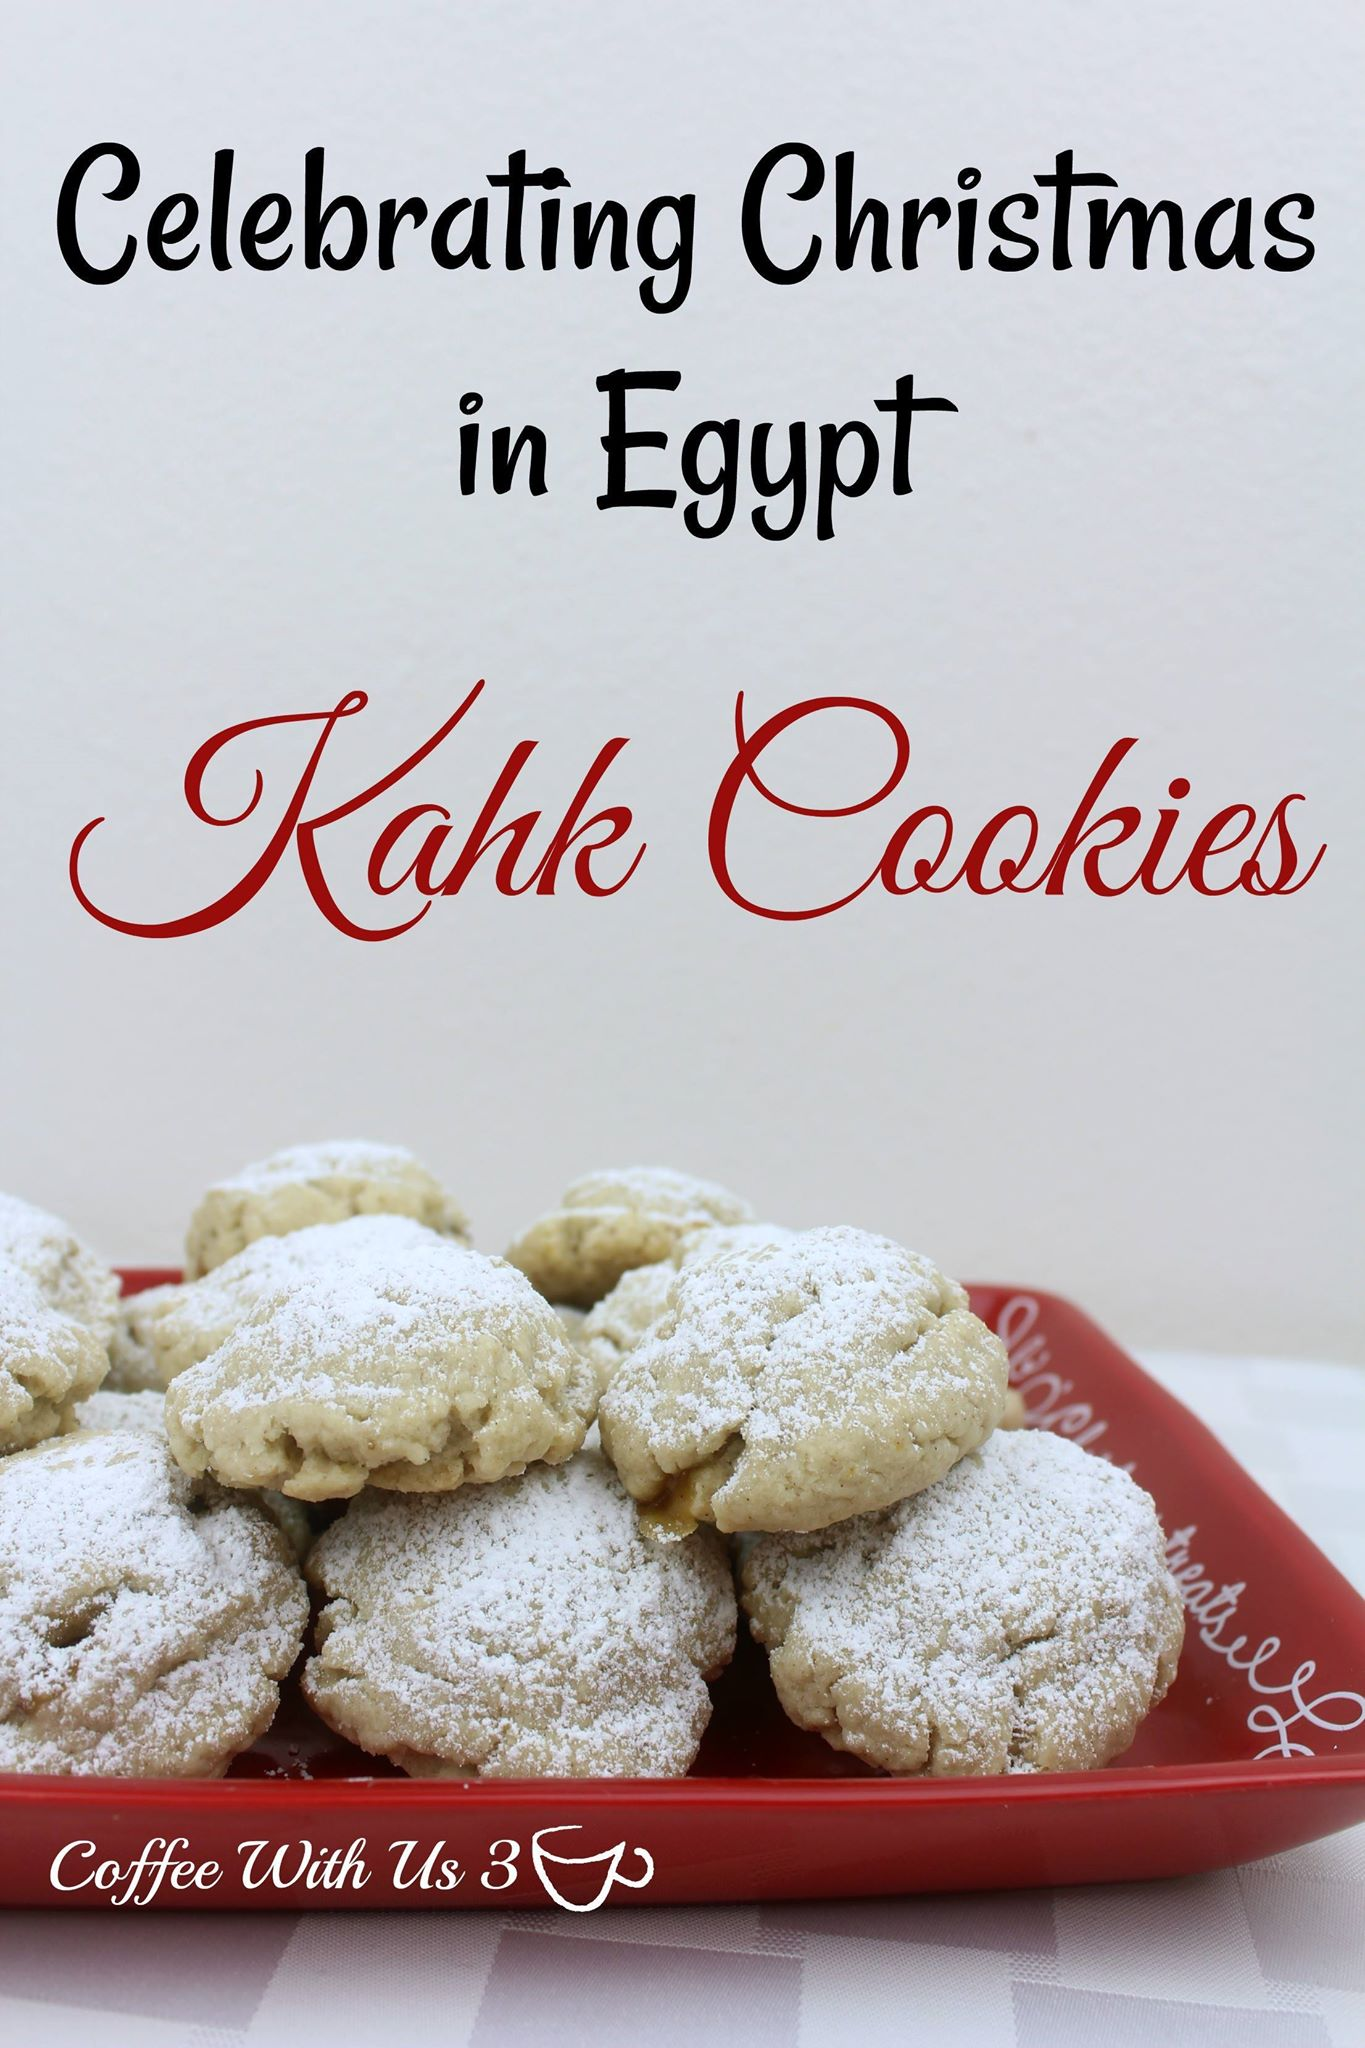 Kahk Cookies Egypt Decorate and Bake Recipe Rezept Christmas Advents Calender Customs and Traditions Inkas Tour Travelblog Baking Blog Food around the World_05